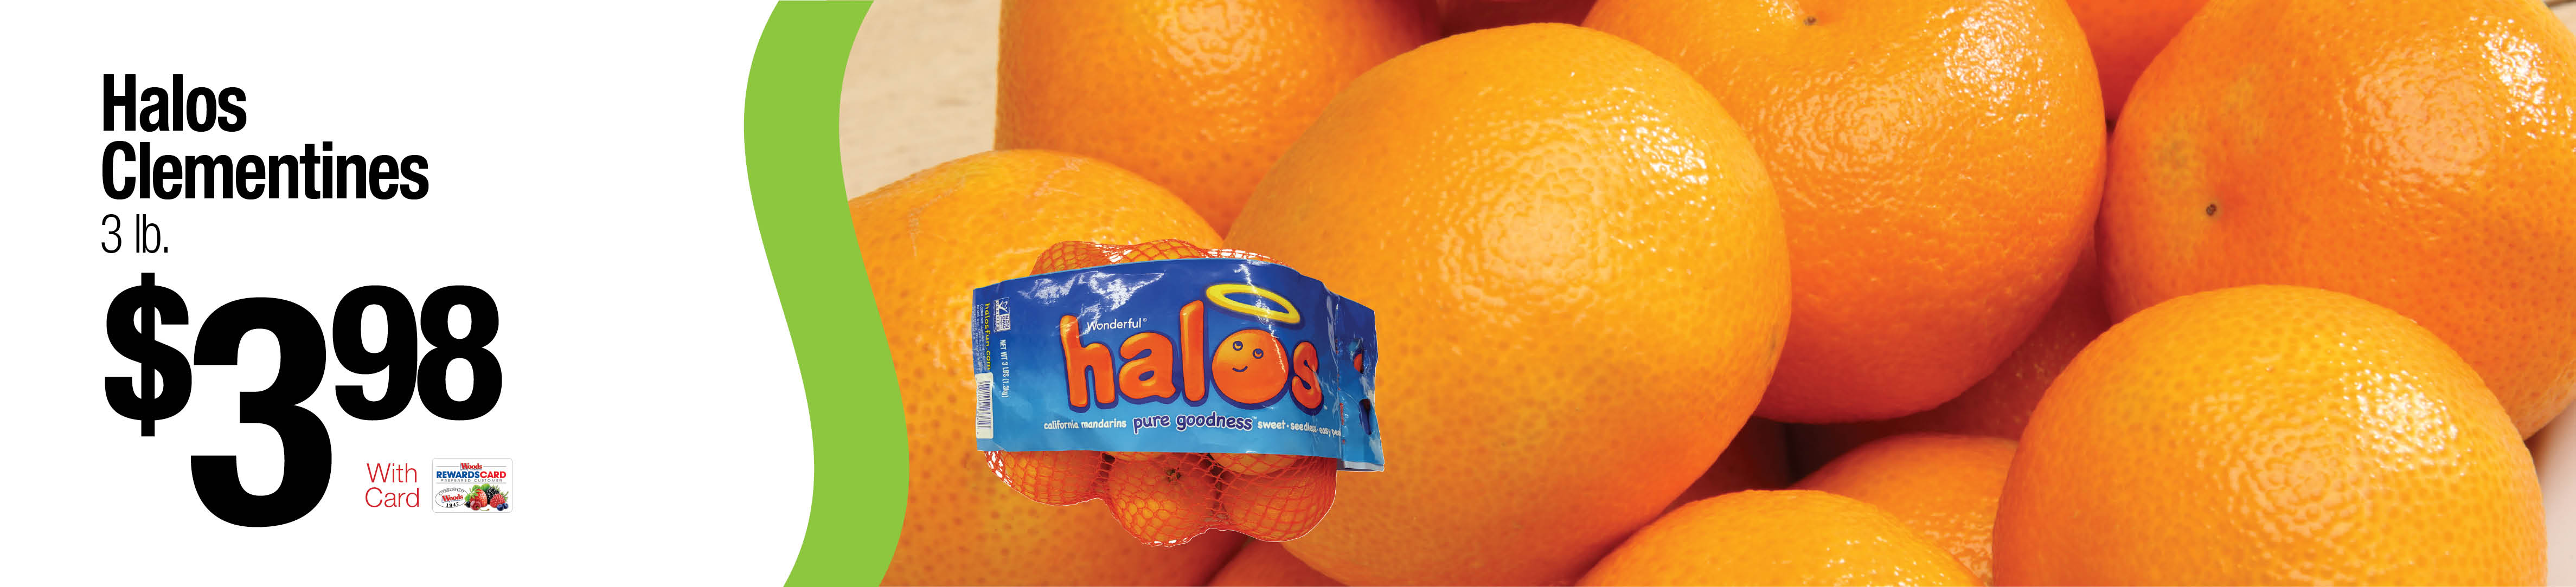 Halos Clementines $3.98